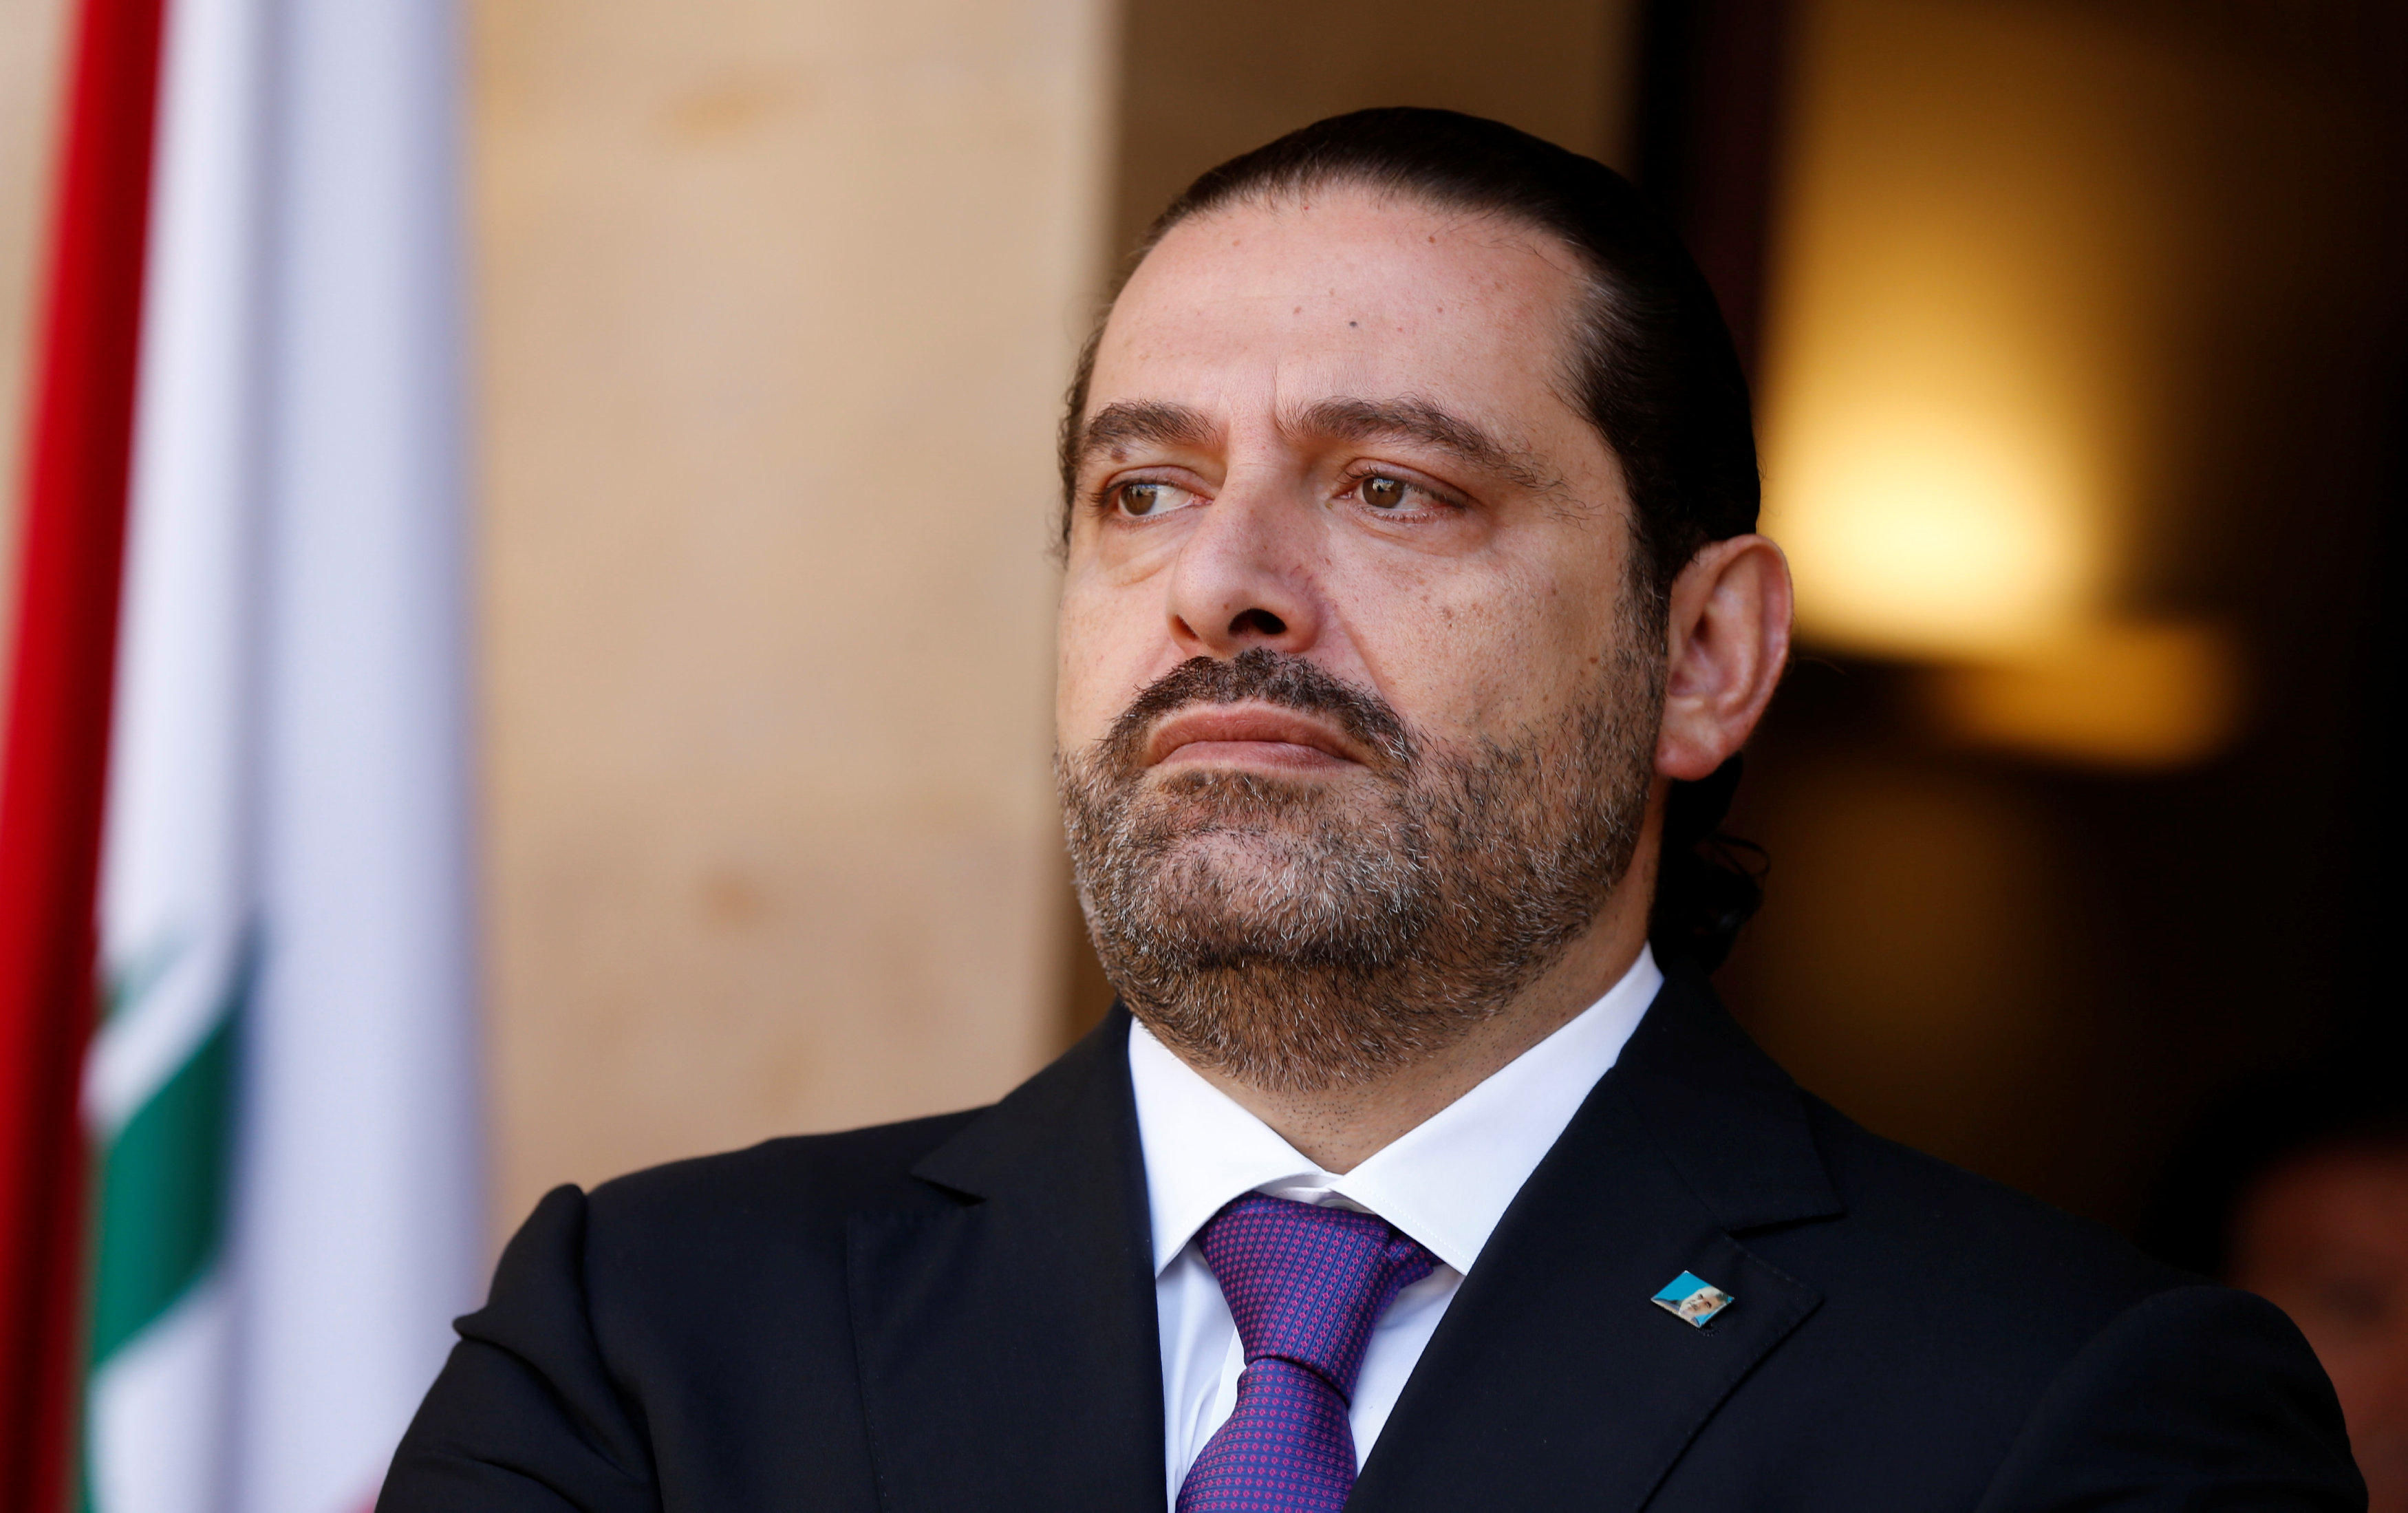 Lebanese Prime Minister Saad Hariri - Seven days and counting: Lebanon's protesters keep up pressure